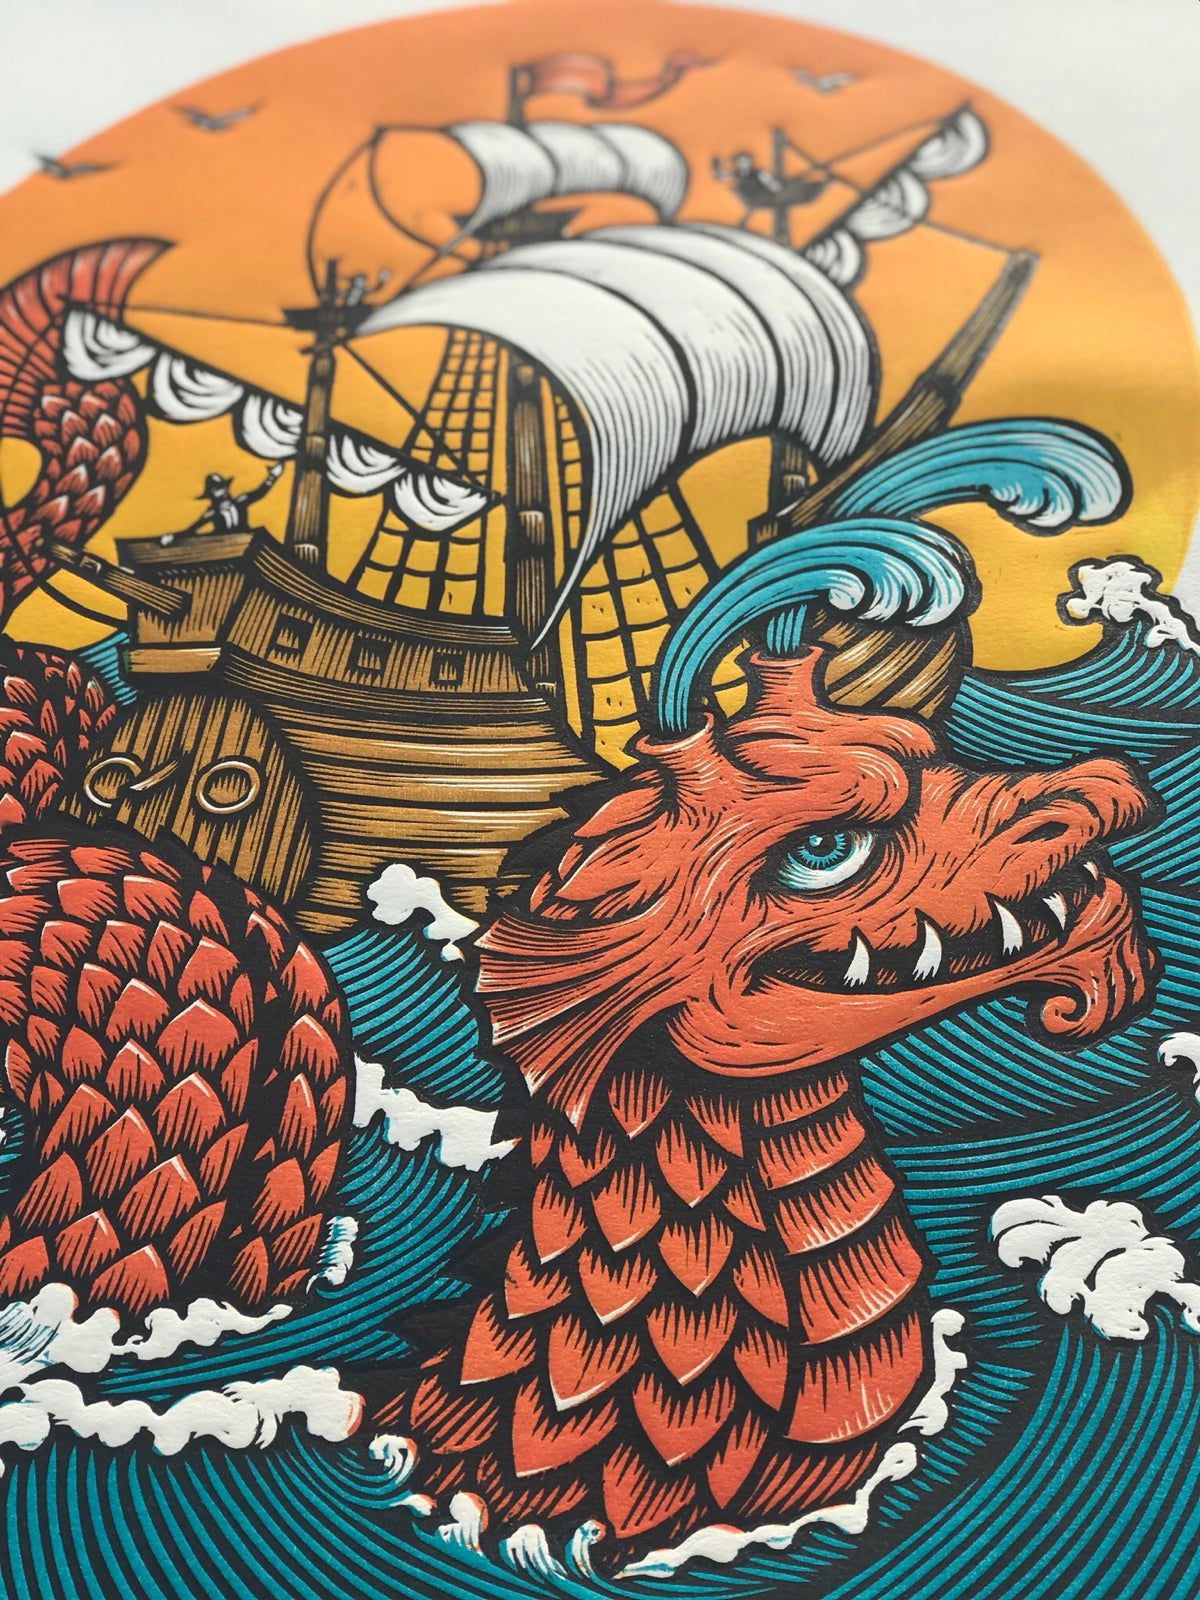 Image of Serpent and Ship